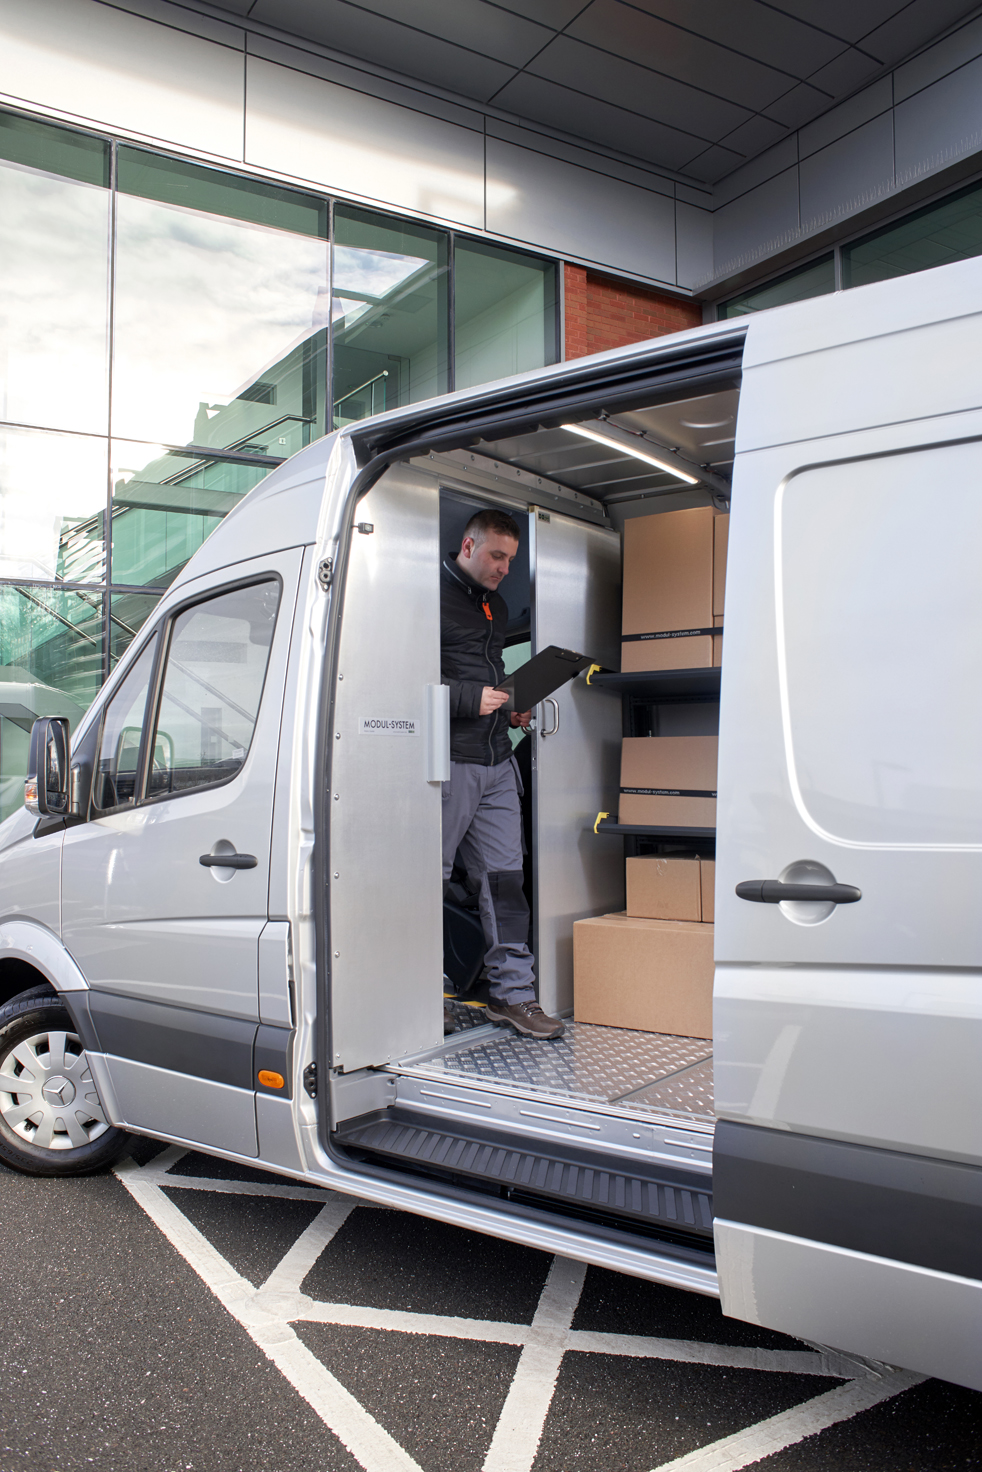 Ford Transit fitted out with modul-express van shelving for delivery